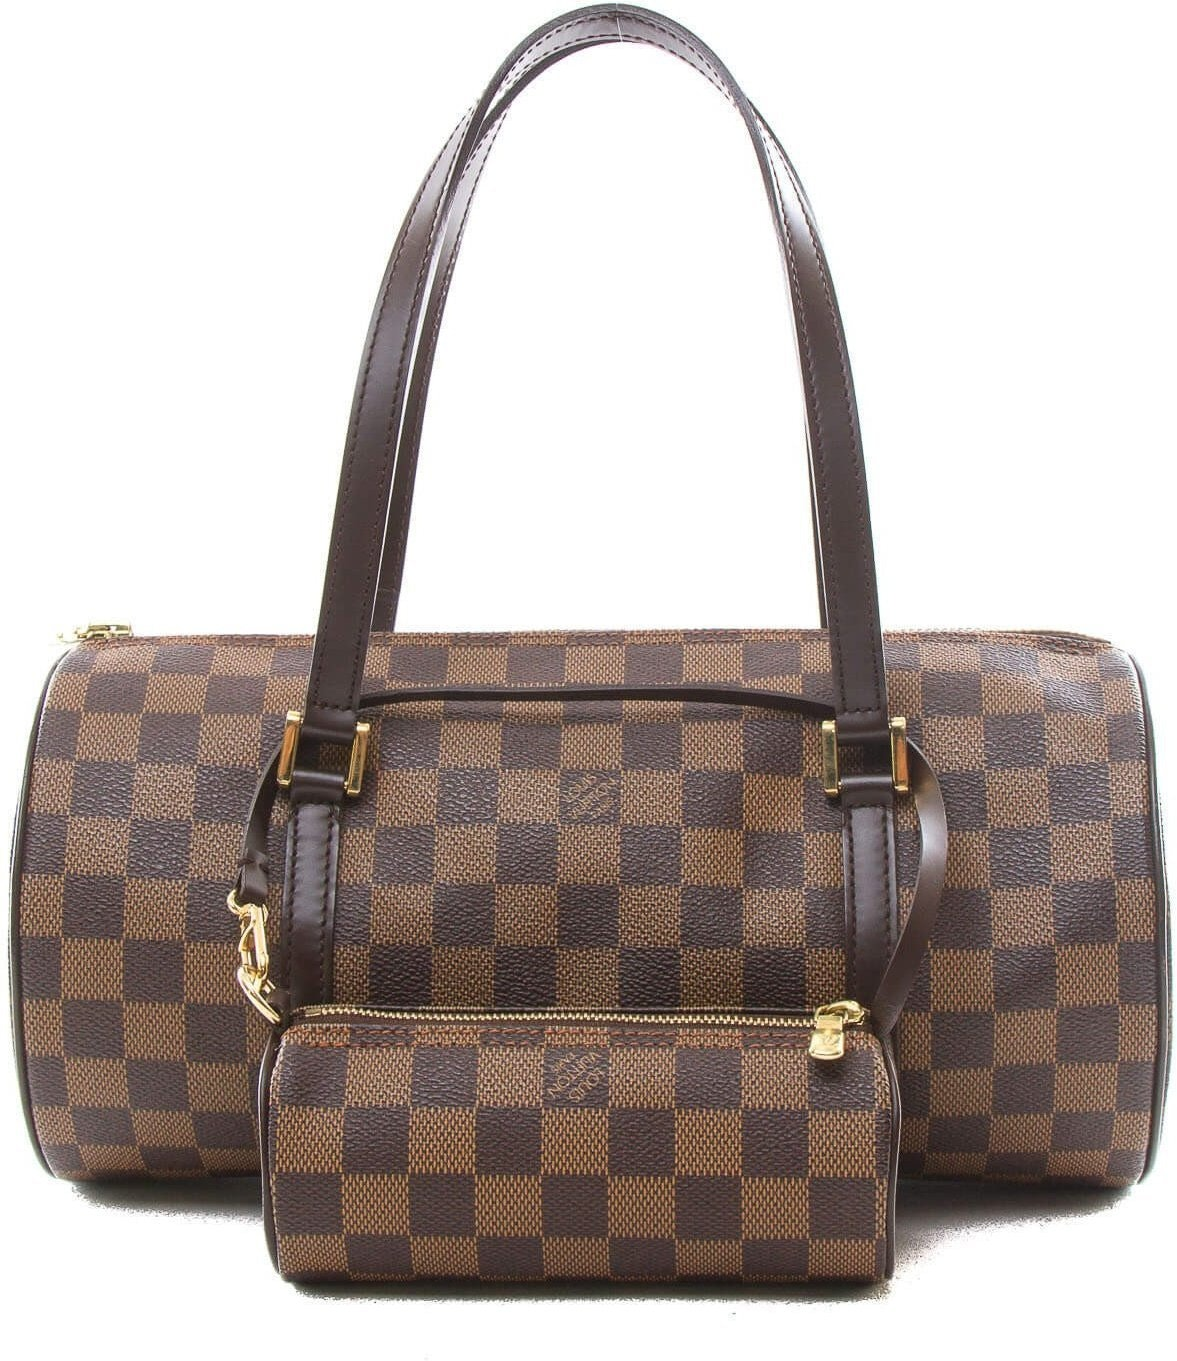 Louis Vuitton Papillon Damier Ebene 30 Brown